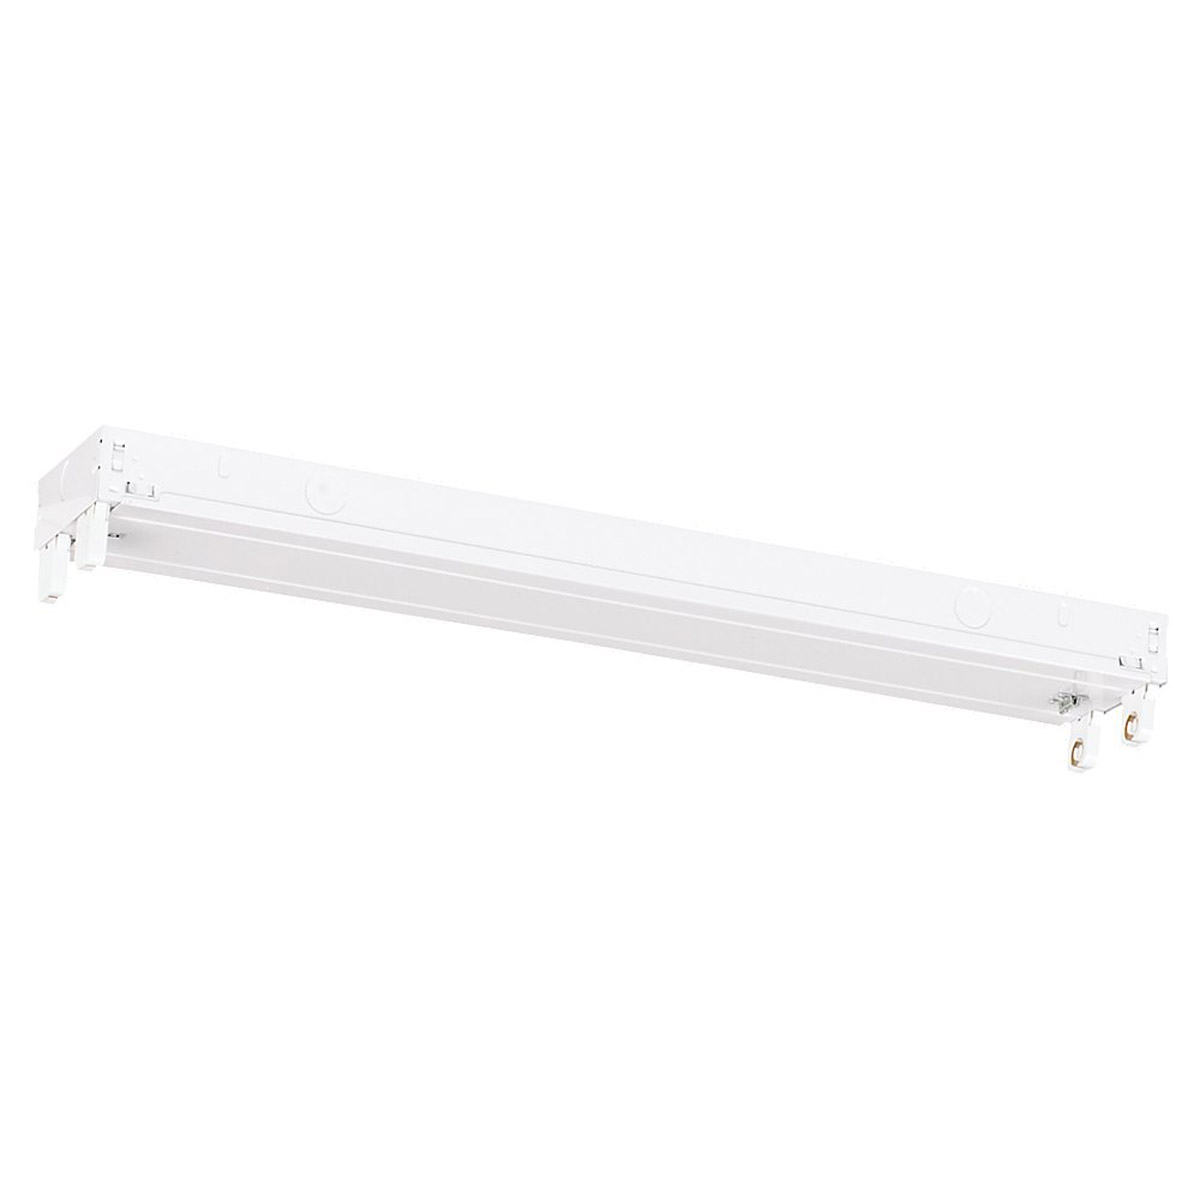 Sea Gull Lighting Signature 2 Light Fluorescent Strip Light in White 59021L-15